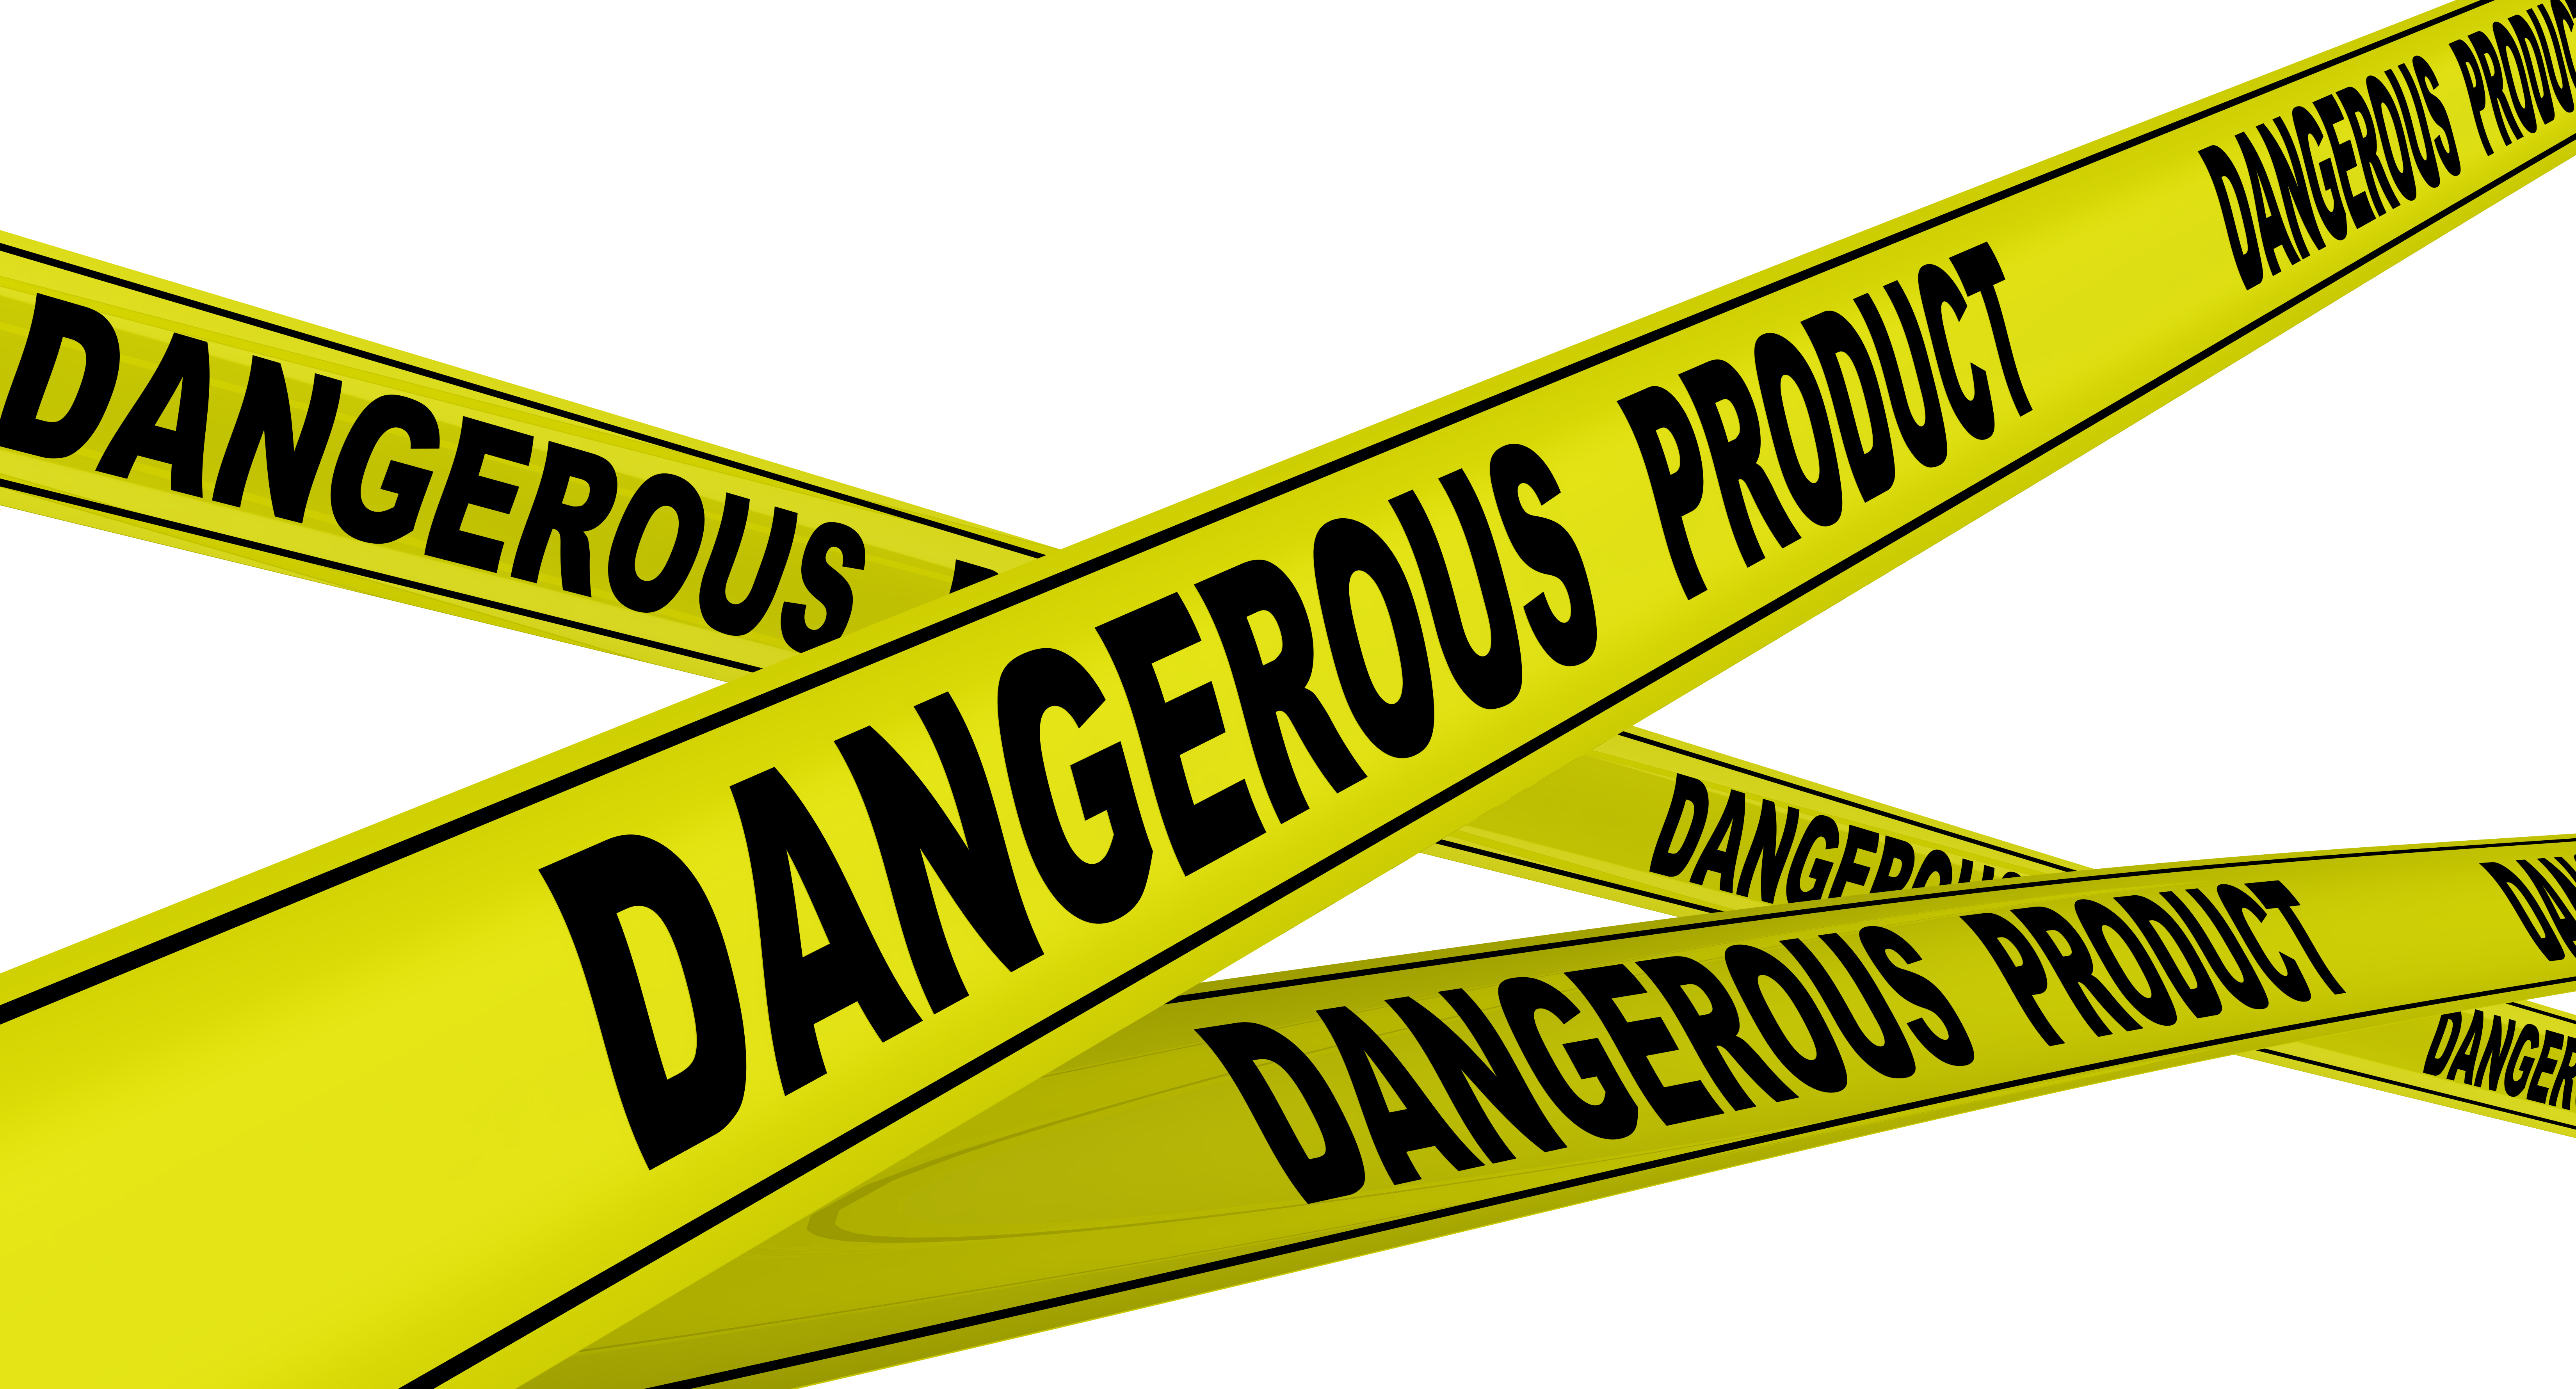 liability dangerous household unsafe types injuries lawsuits damages recoverable recalled defective attorneys firm legal florida law surge fotolia cochran represent